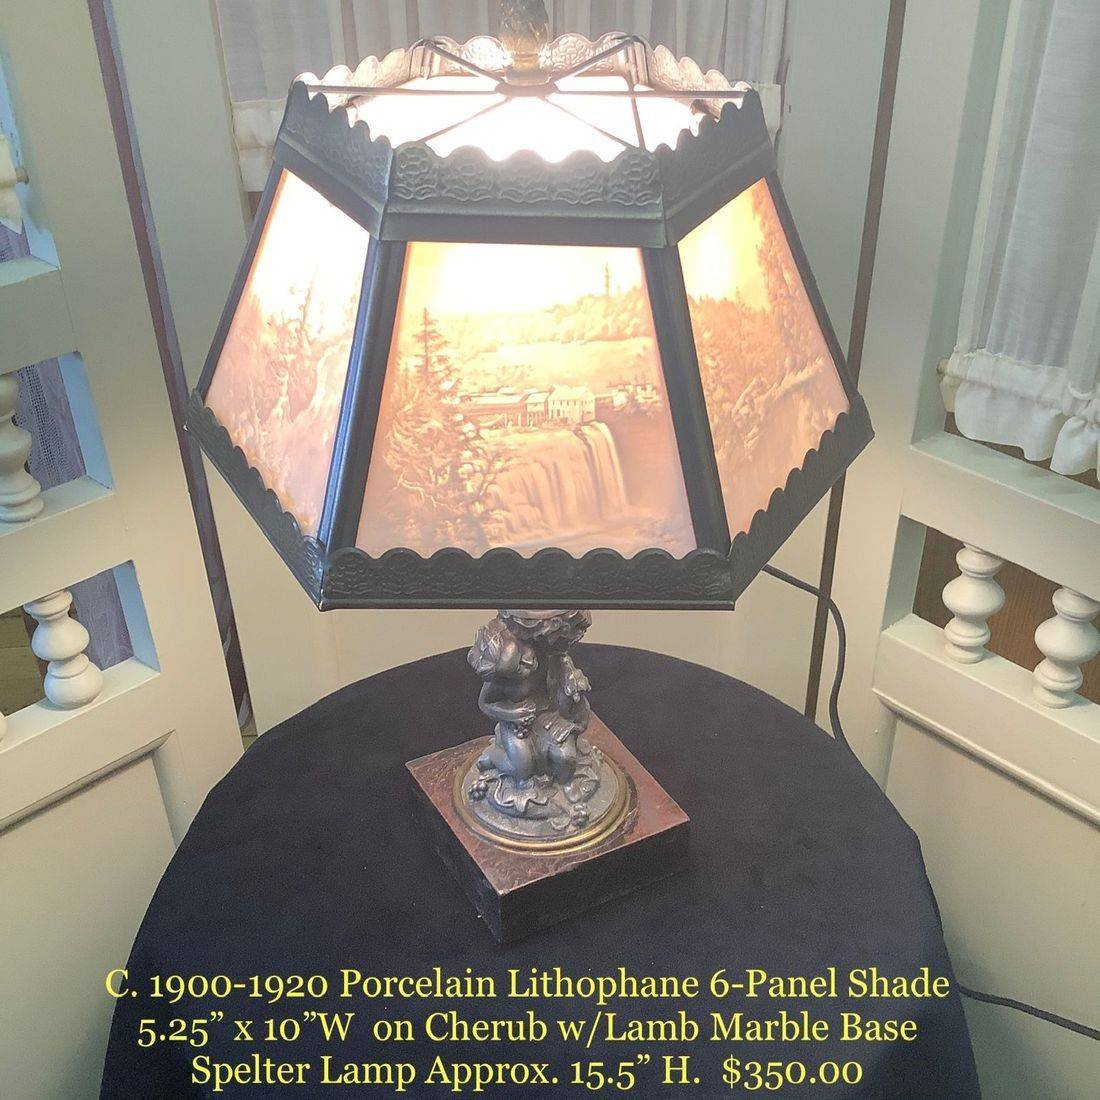 "C. 1900-1910 Porcelain Lithophane 6-Panel Shade on Cherub w/Lamb Marble Base Spelter Lamp  Approx. 15.5""H.   $350.00"